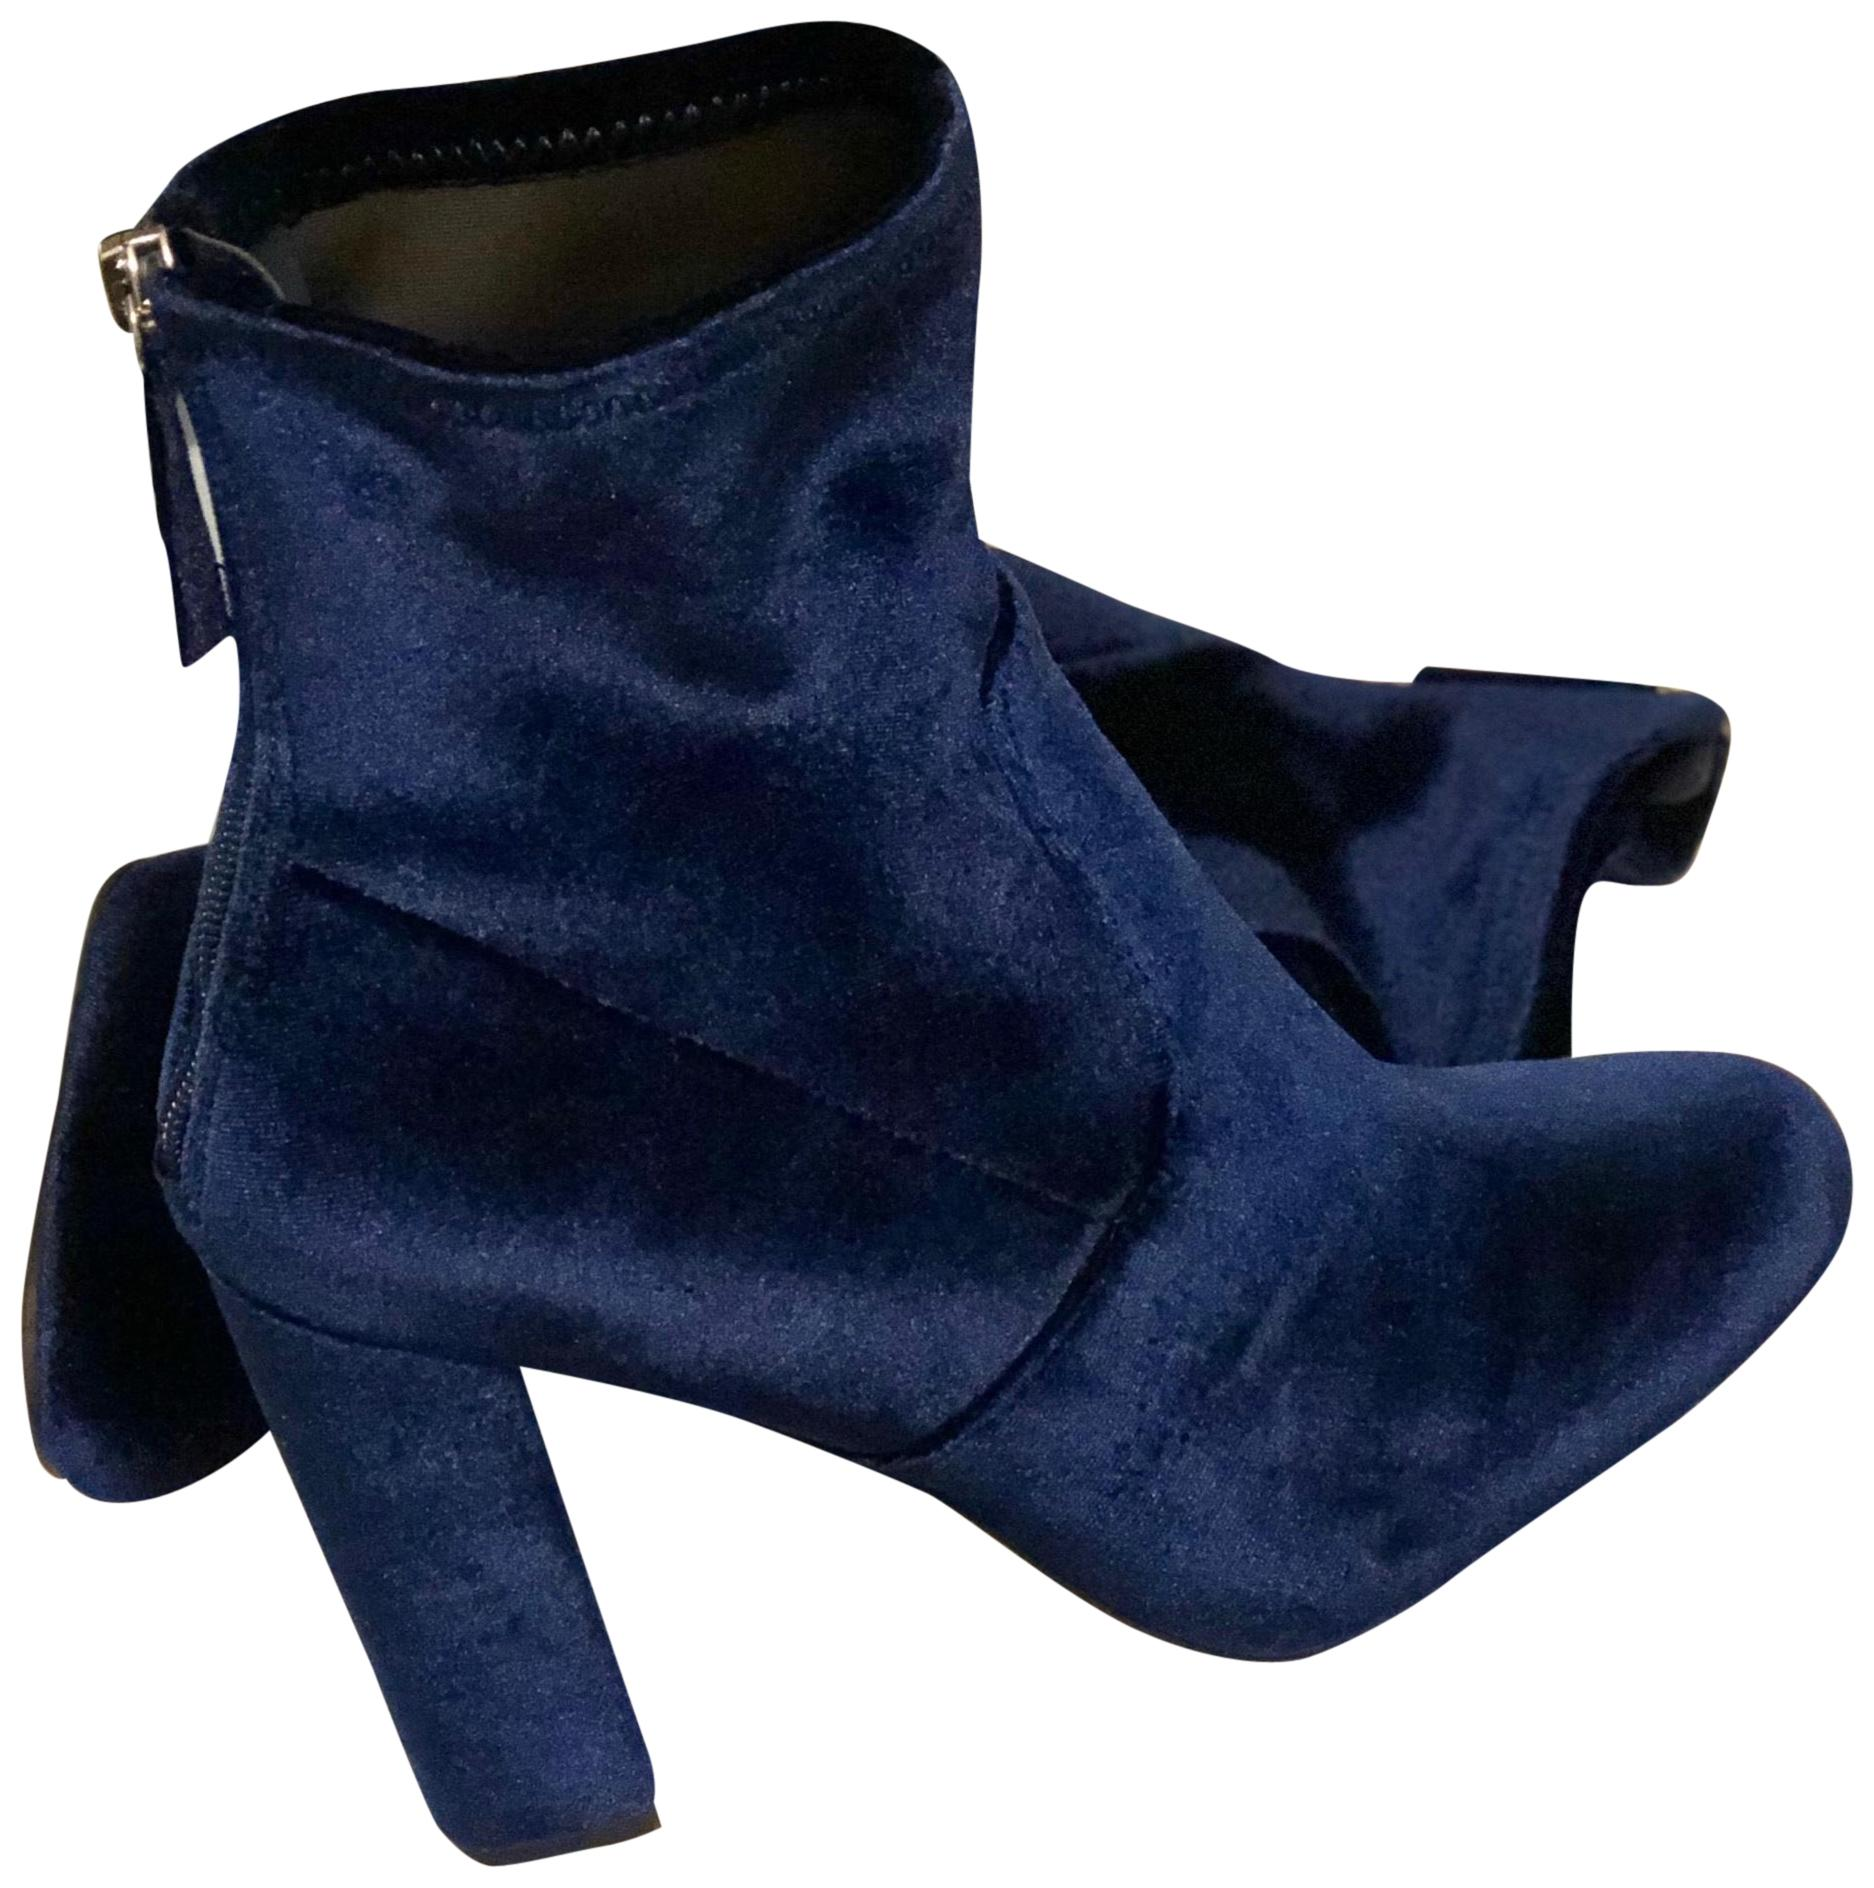 Steve US Madden Blue 190640692823 Boots/Booties Size US Steve 8.5 Regular (M, B) a019ac